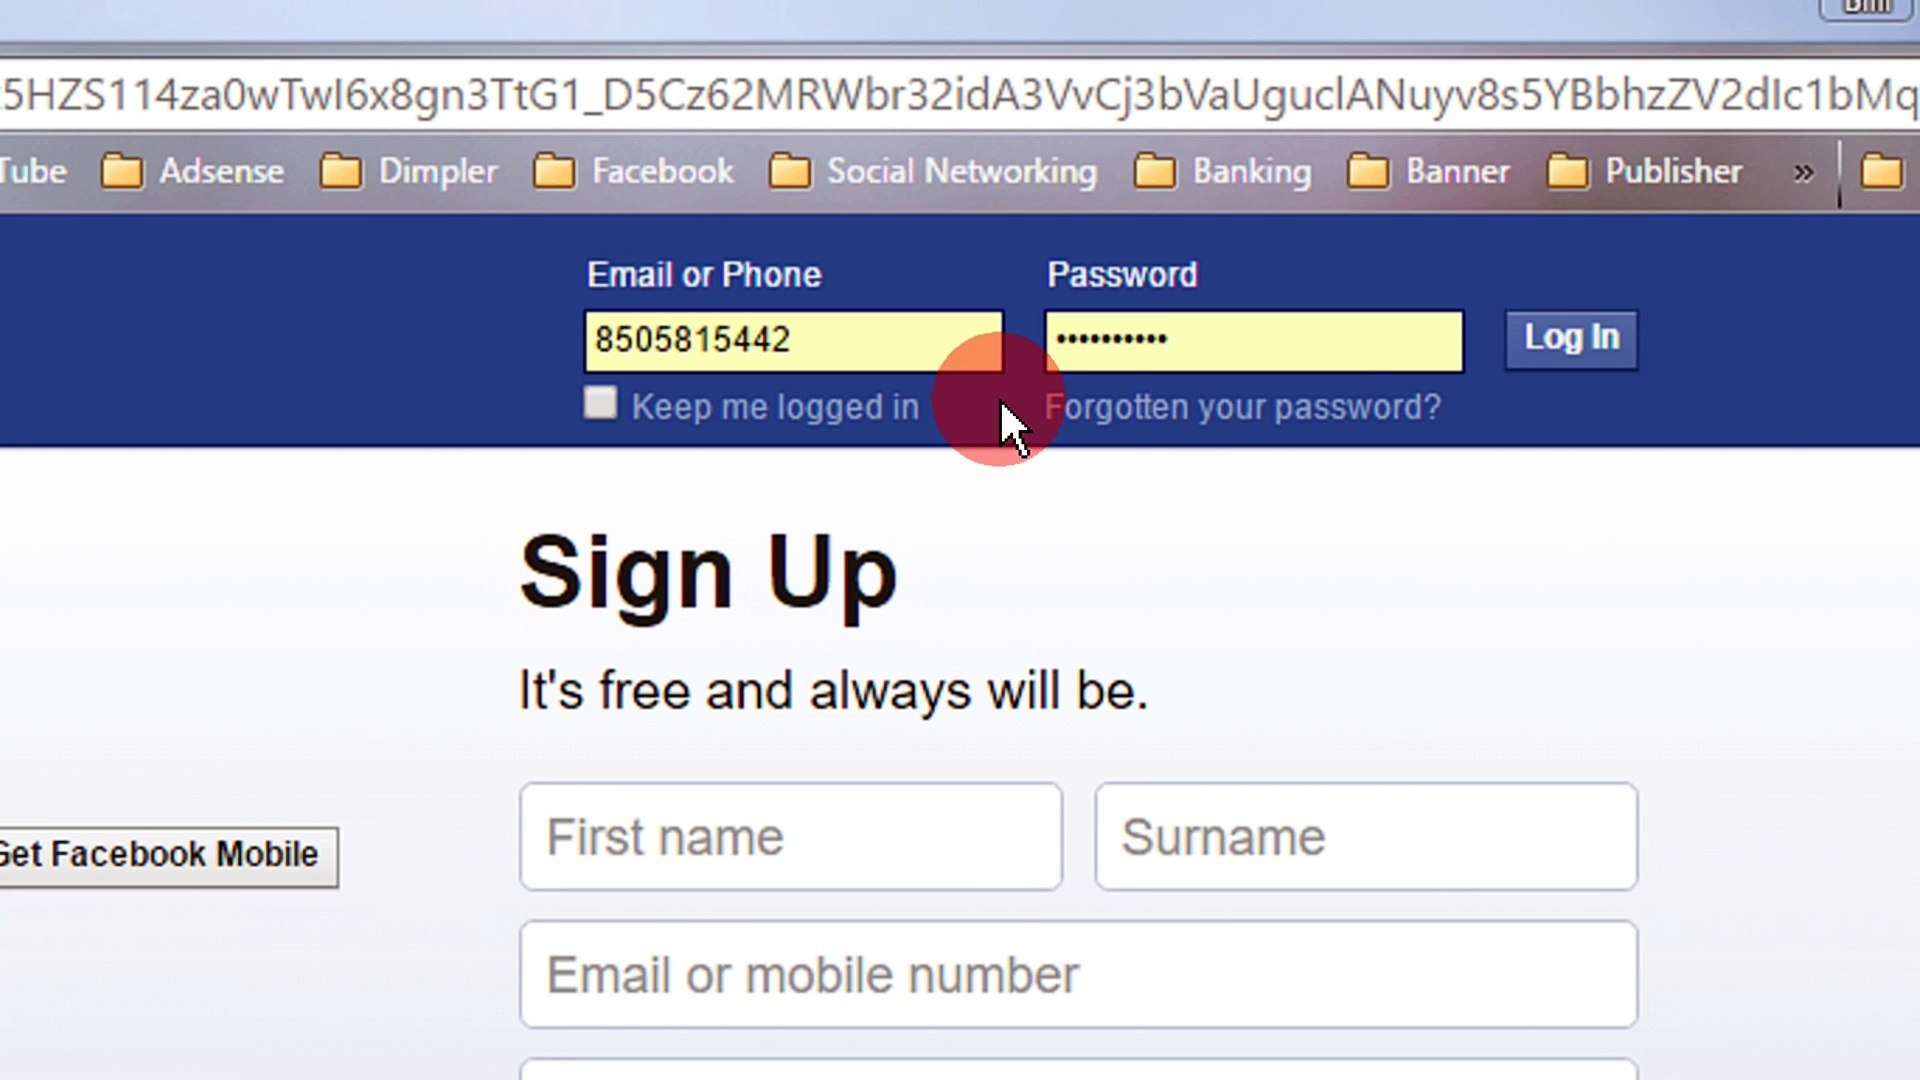 How To Create Facebook Username - Change Facebook Login Email